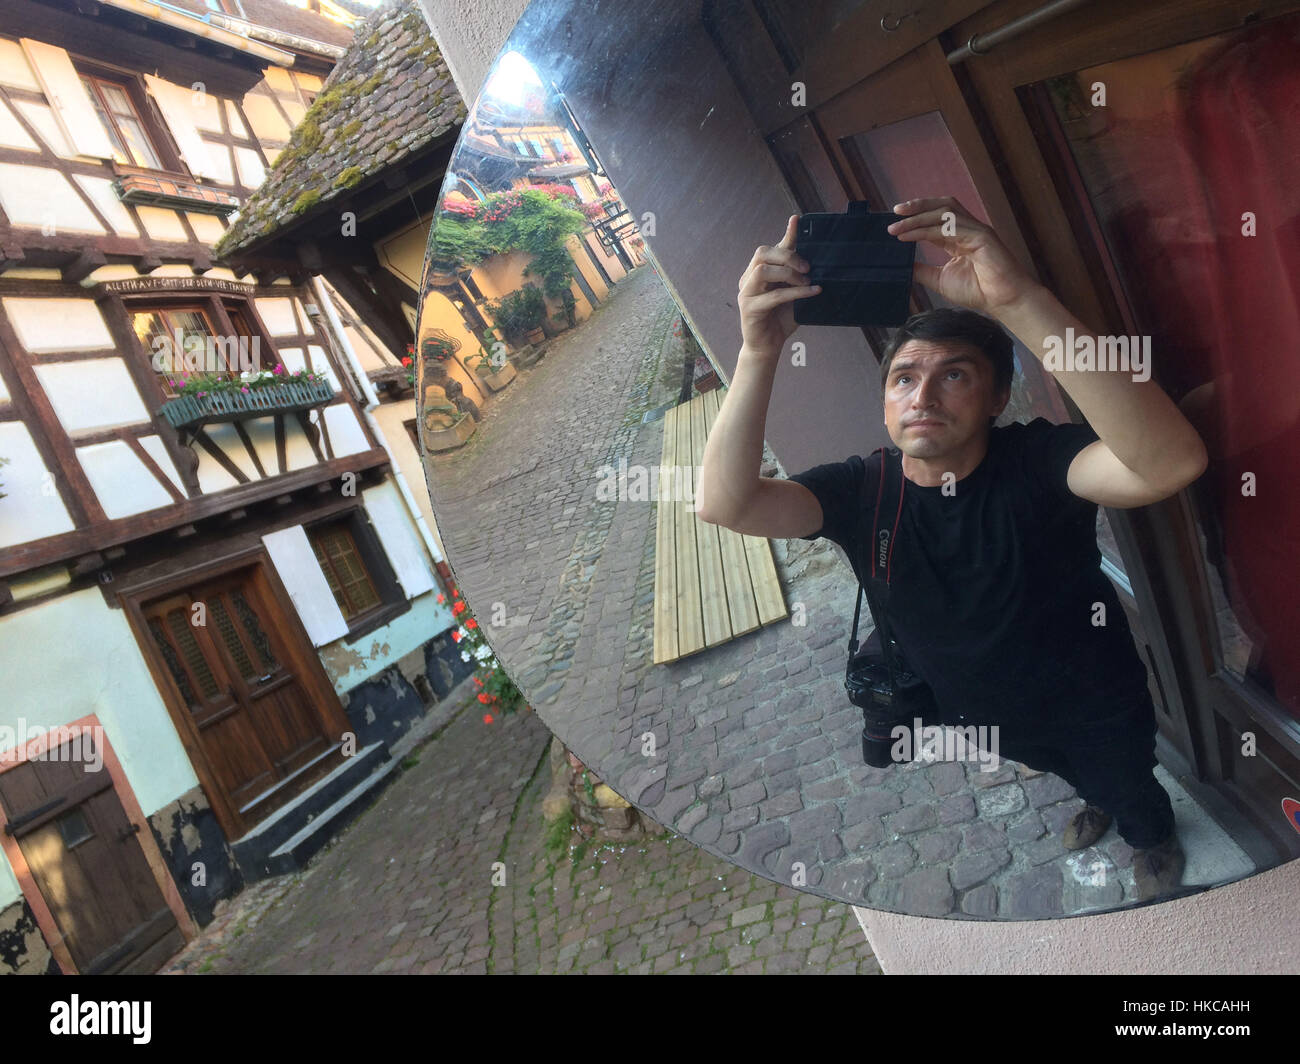 Photographer Vova Pomortzeff uses a smartphone to make a selfie using a convex mirror in Eguisheim, Alsace, France. Stock Photo